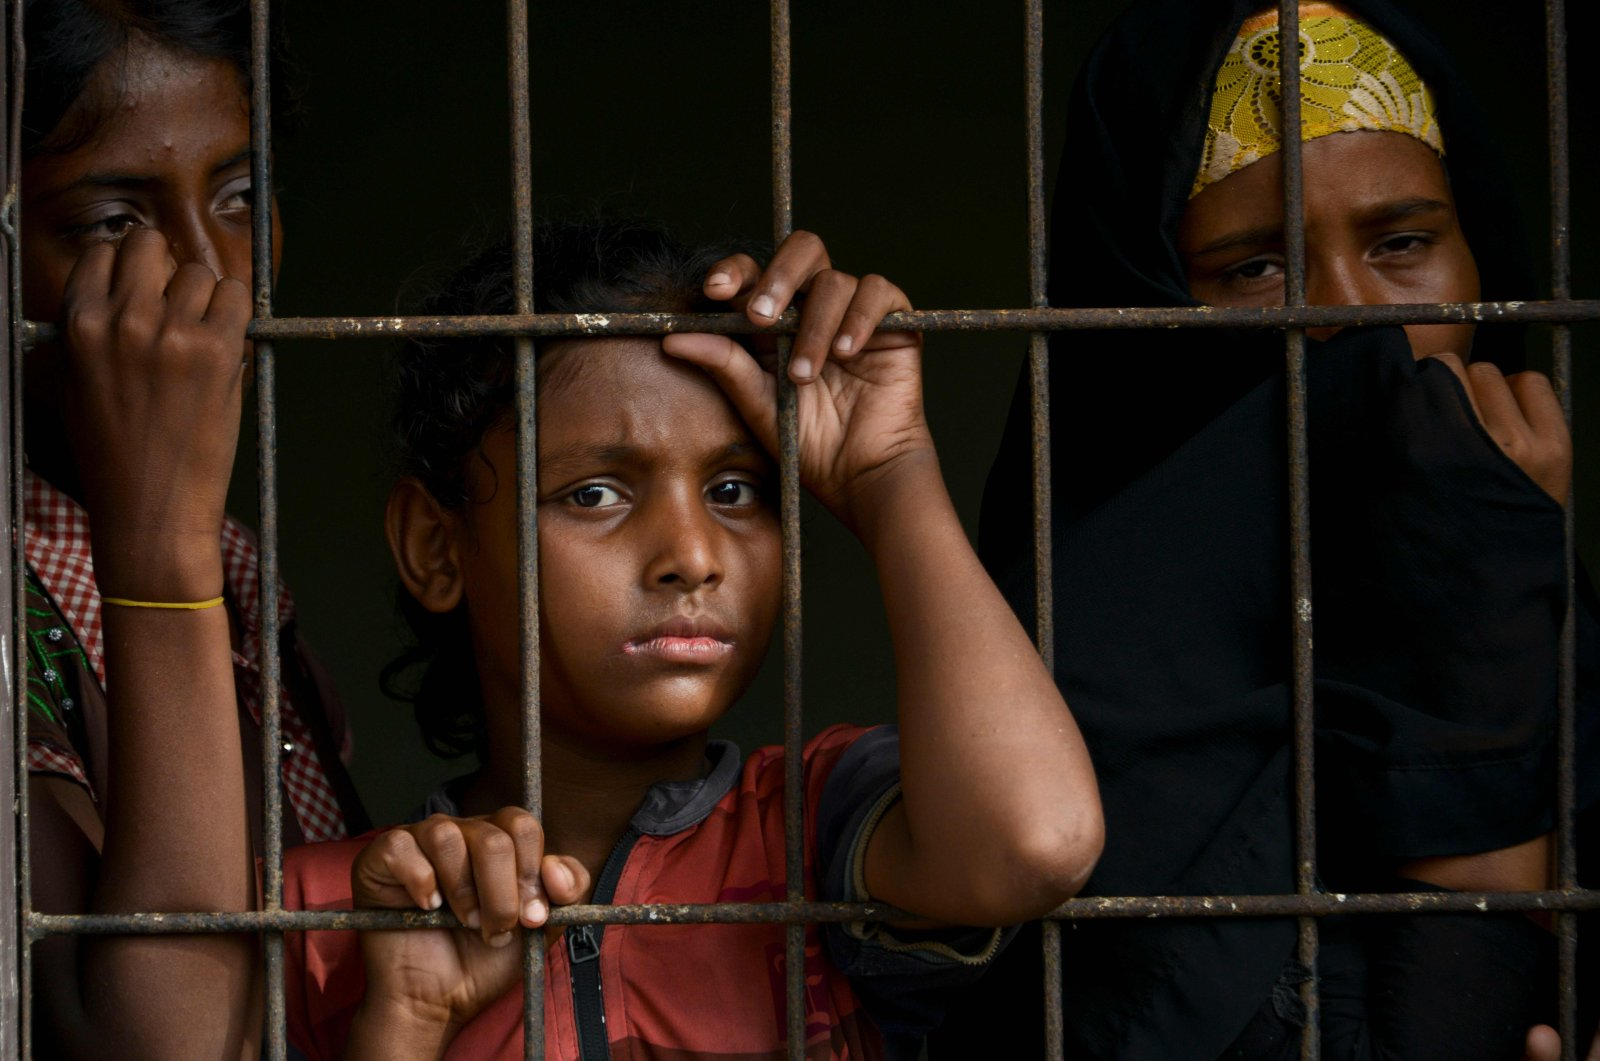 Rohingya from Myanmar look through a fence at the immigration detention center in Lhokseumawe, in Indonesia's North Aceh Regency, June 26, 2020. (AFP Photo)